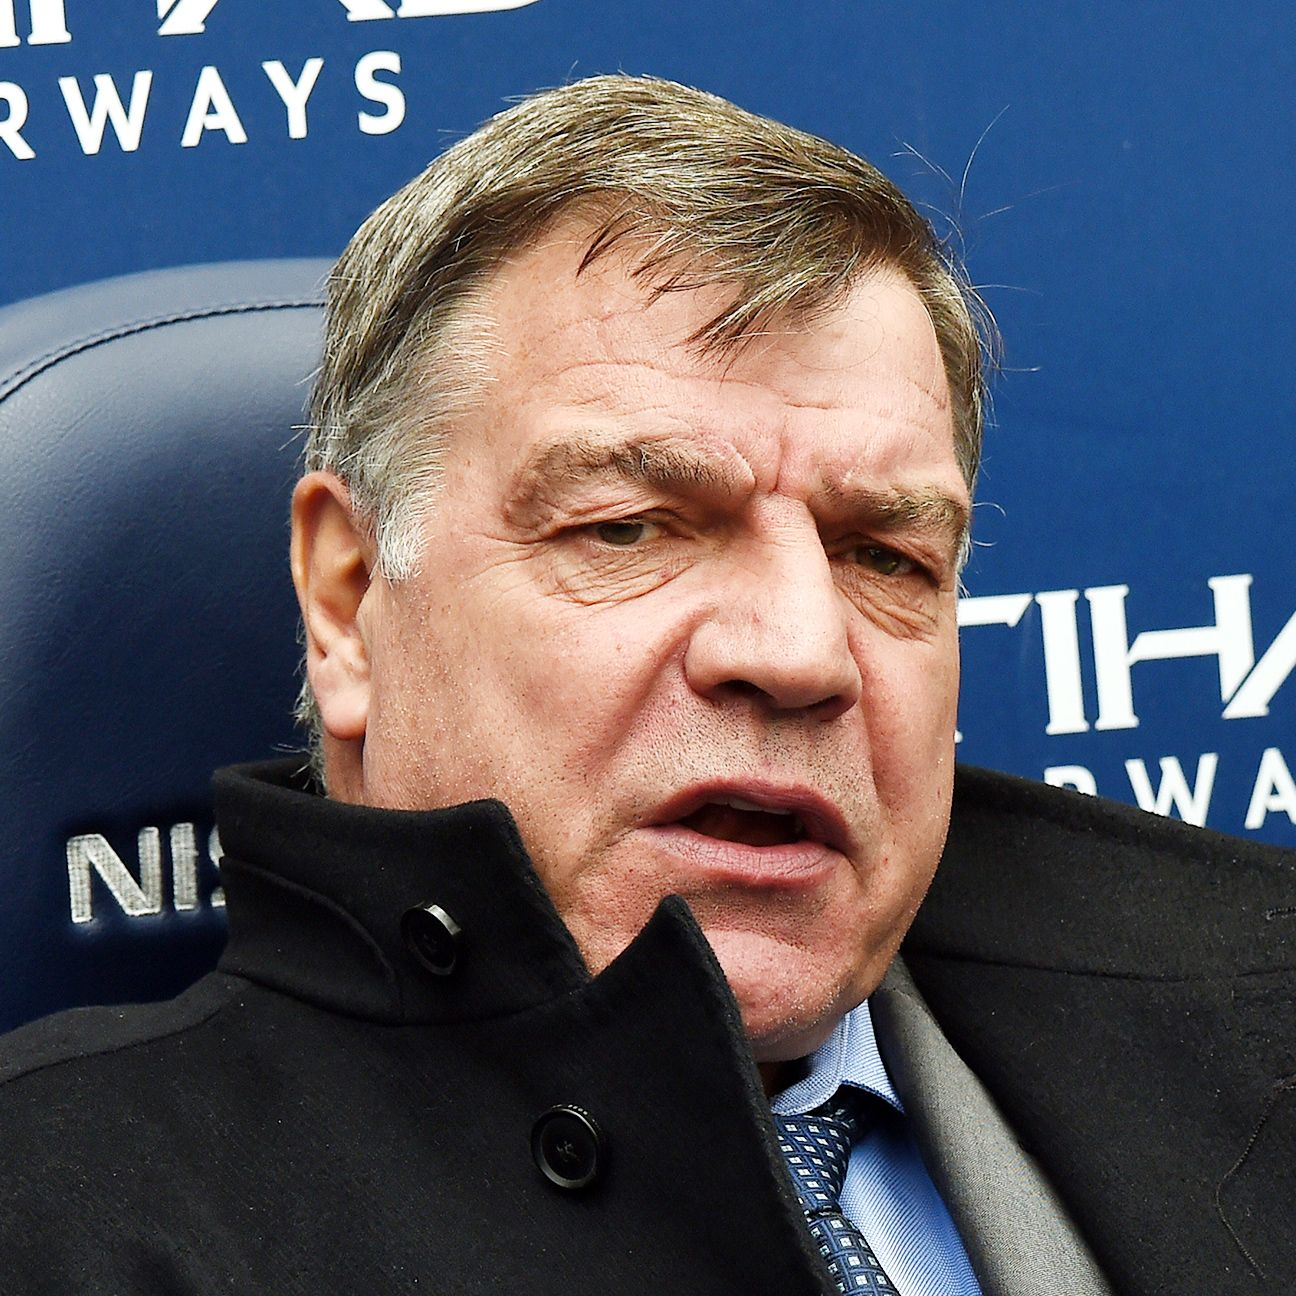 After Sunday's loss at Manchester City, Sam Allardyce's West Ham have just one victory in their last 12 matches.